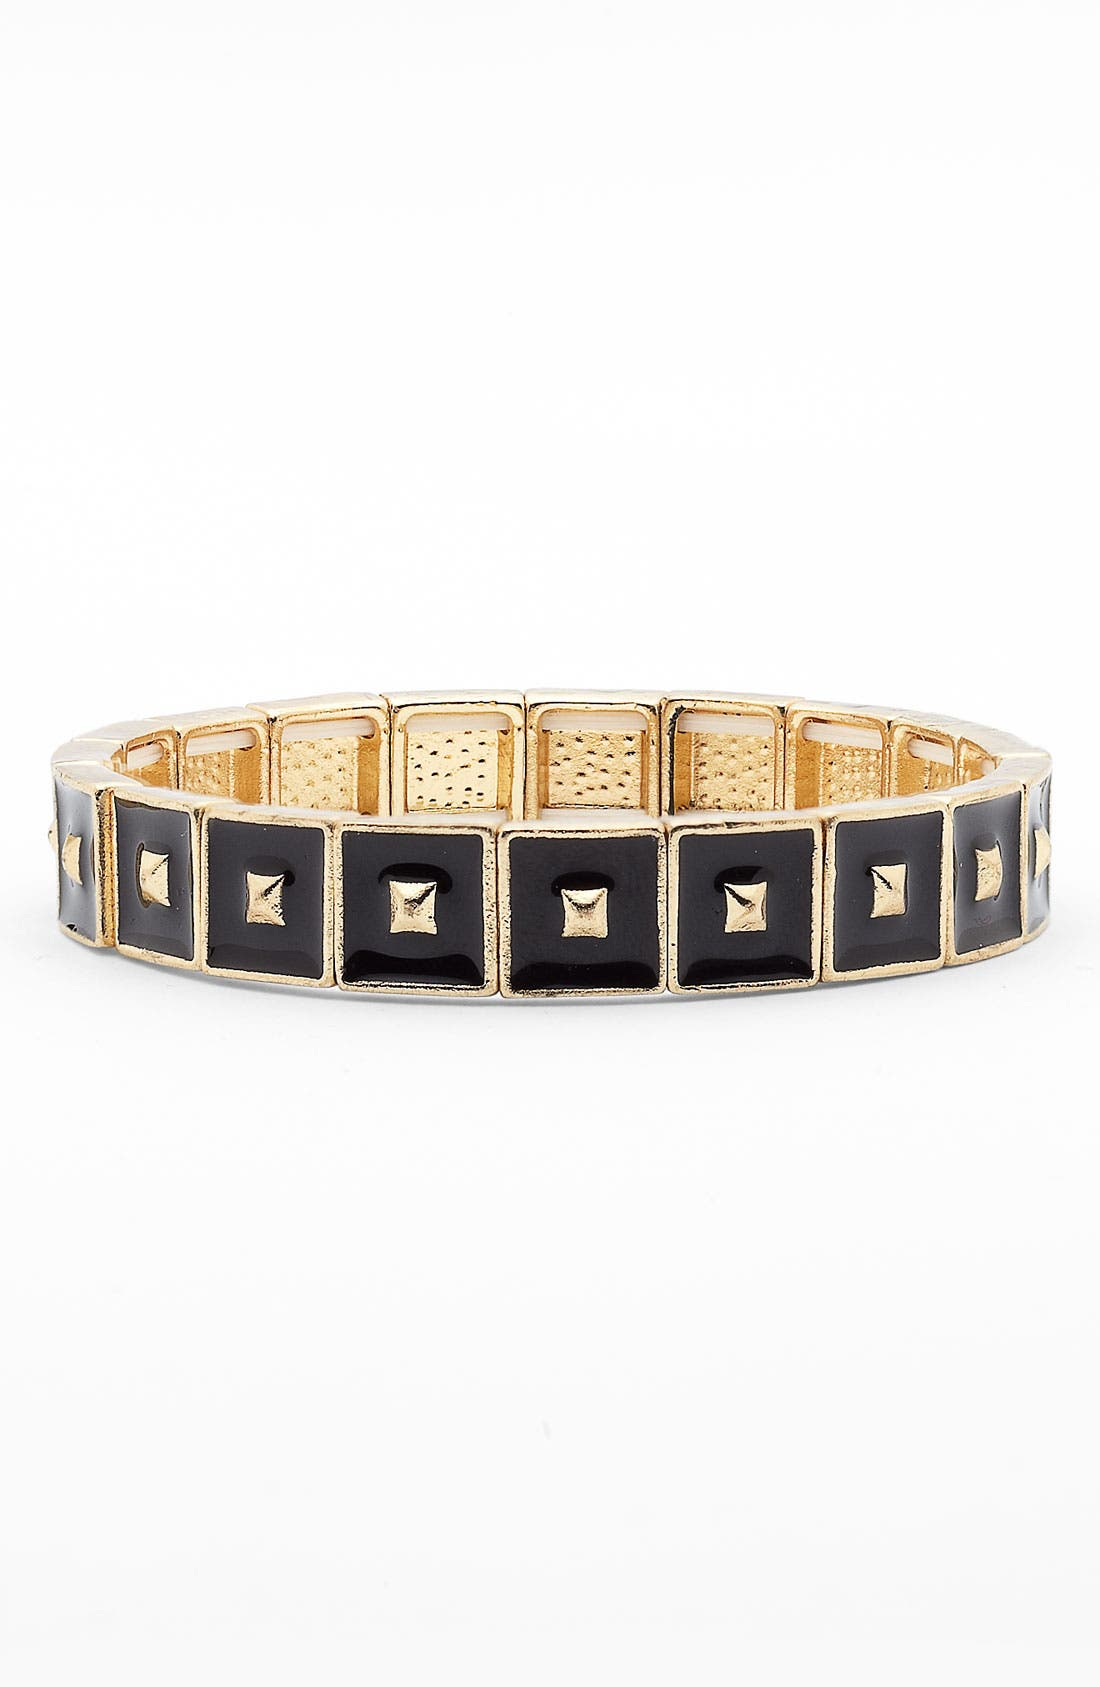 Alternate Image 1 Selected - Stephan & Co. Deco Stretch Bracelet